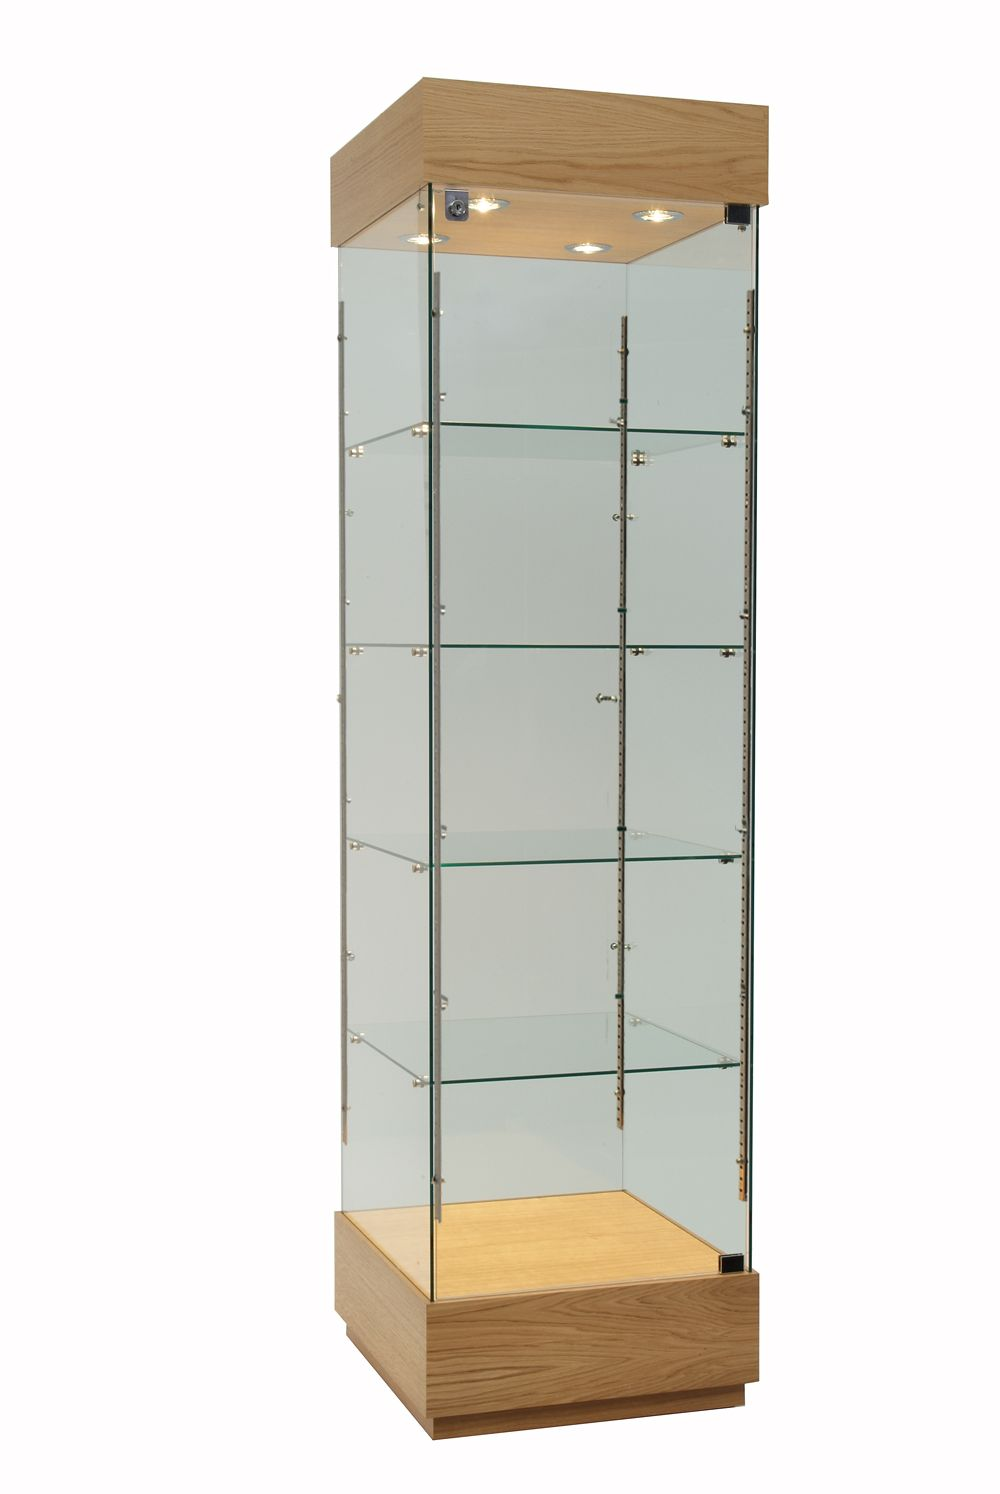 Awesome A Beautifully Designed Frameless Slimline Glass Display Download Free Architecture Designs Embacsunscenecom